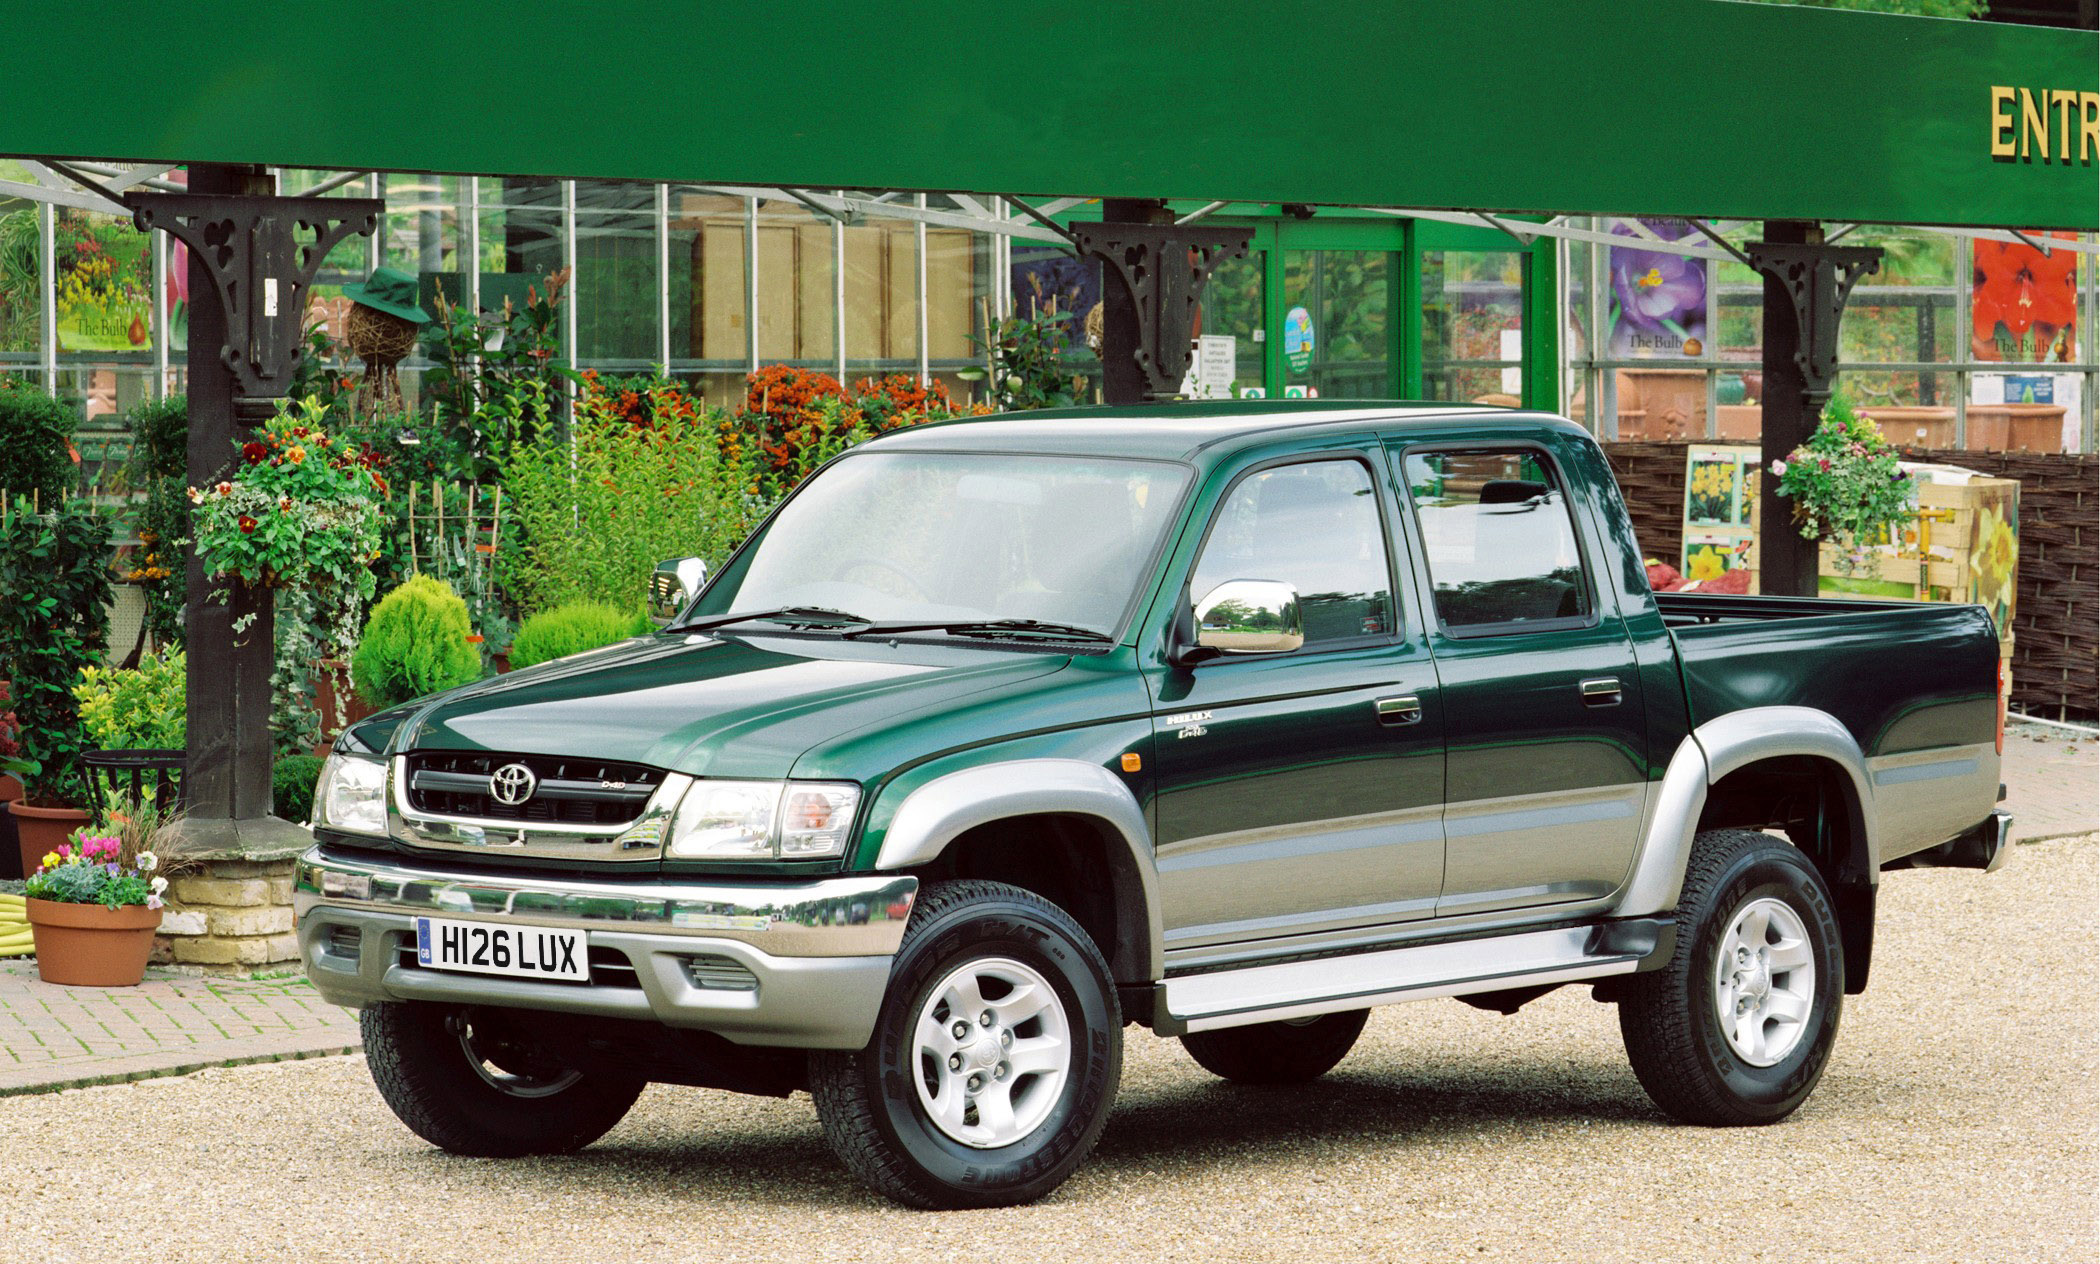 2004 Toyota Hilux Double Cab Picture 77120